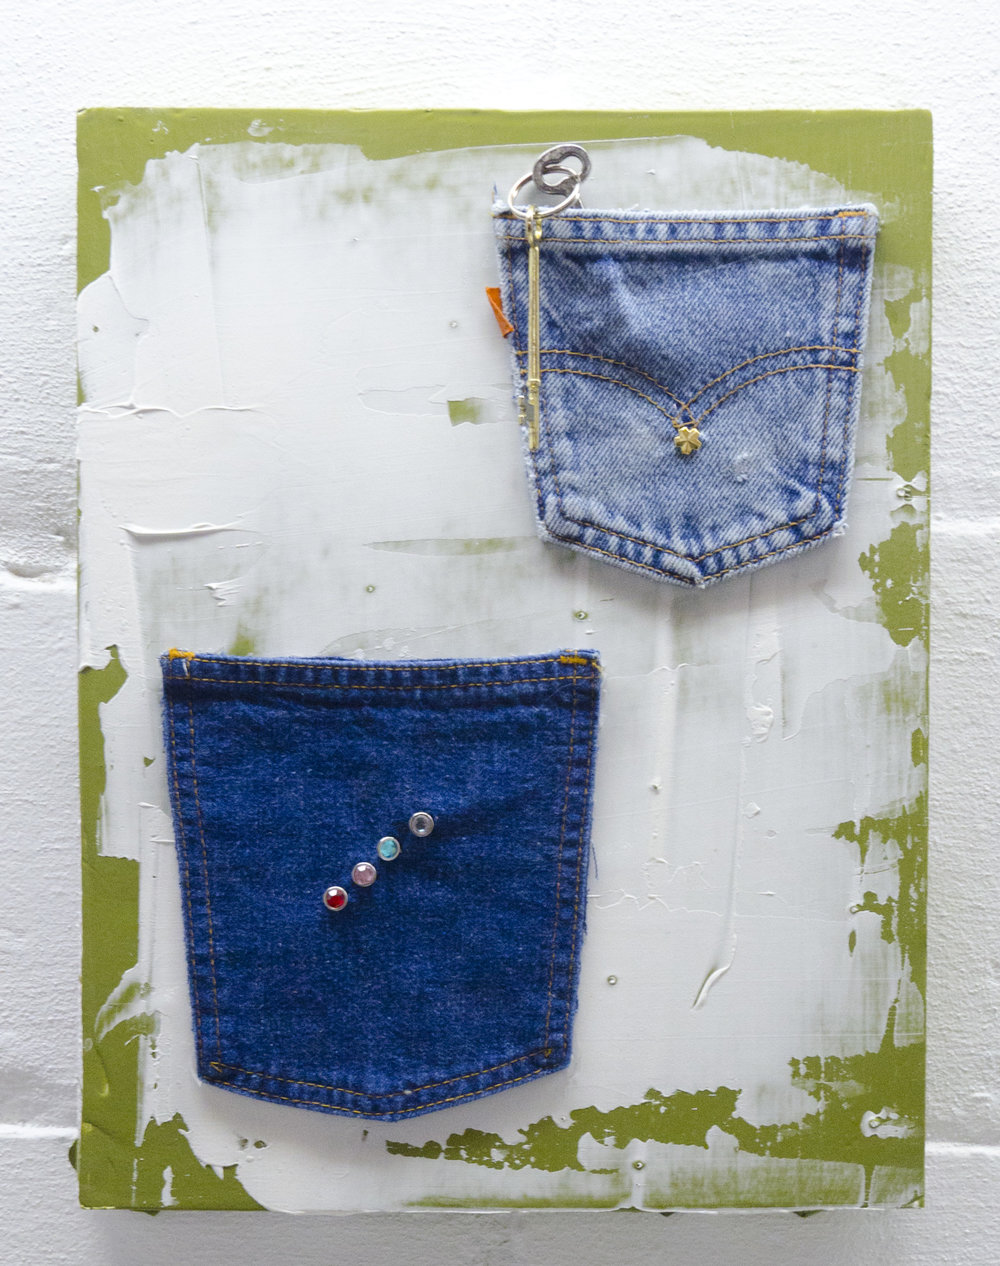 Yours or Mine?   2017  Denim pocket, rhinestones, keys, modeling paste, and acrylic on foam board